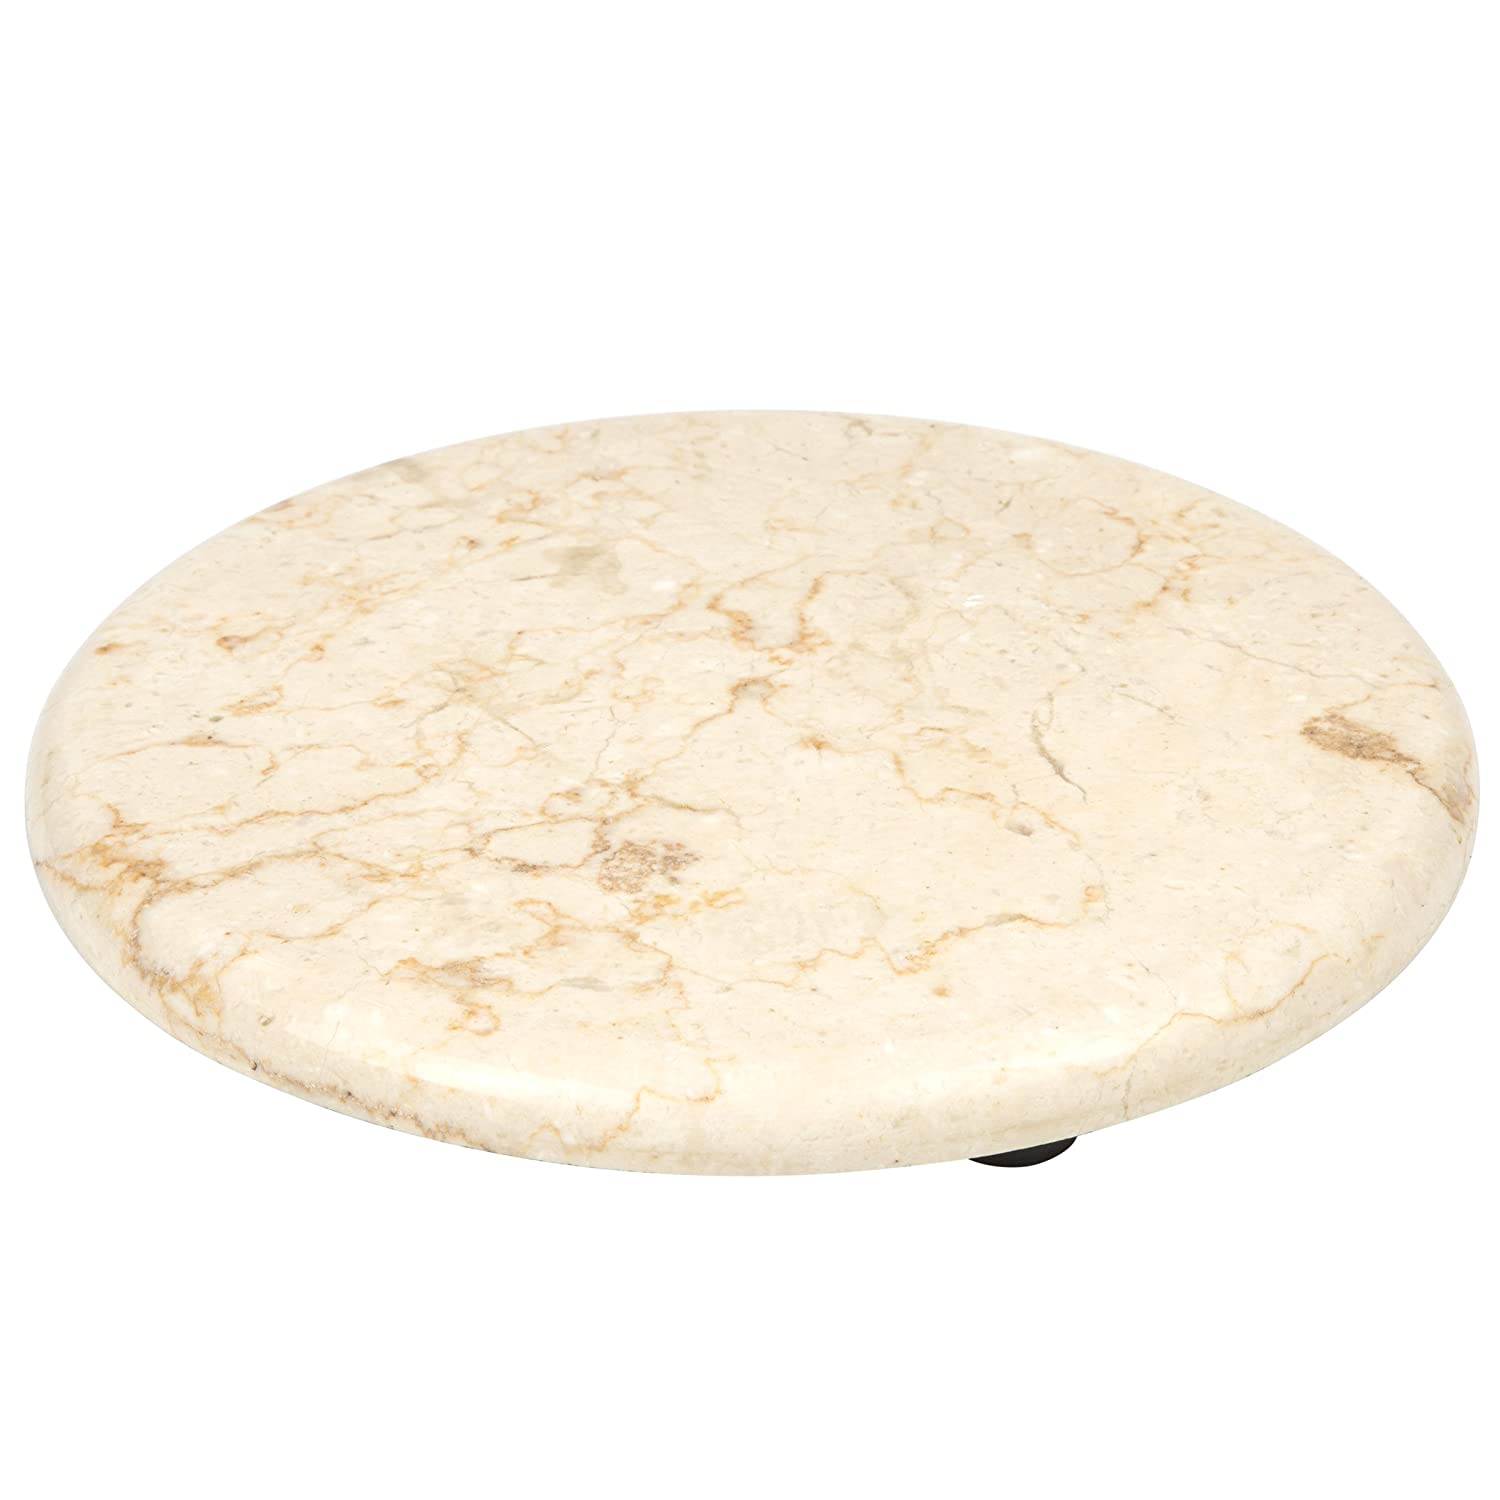 2 Creative Home Set of 2 pcs Genuine Champagne Marble 8 Round Trivet Cheese Serving Board